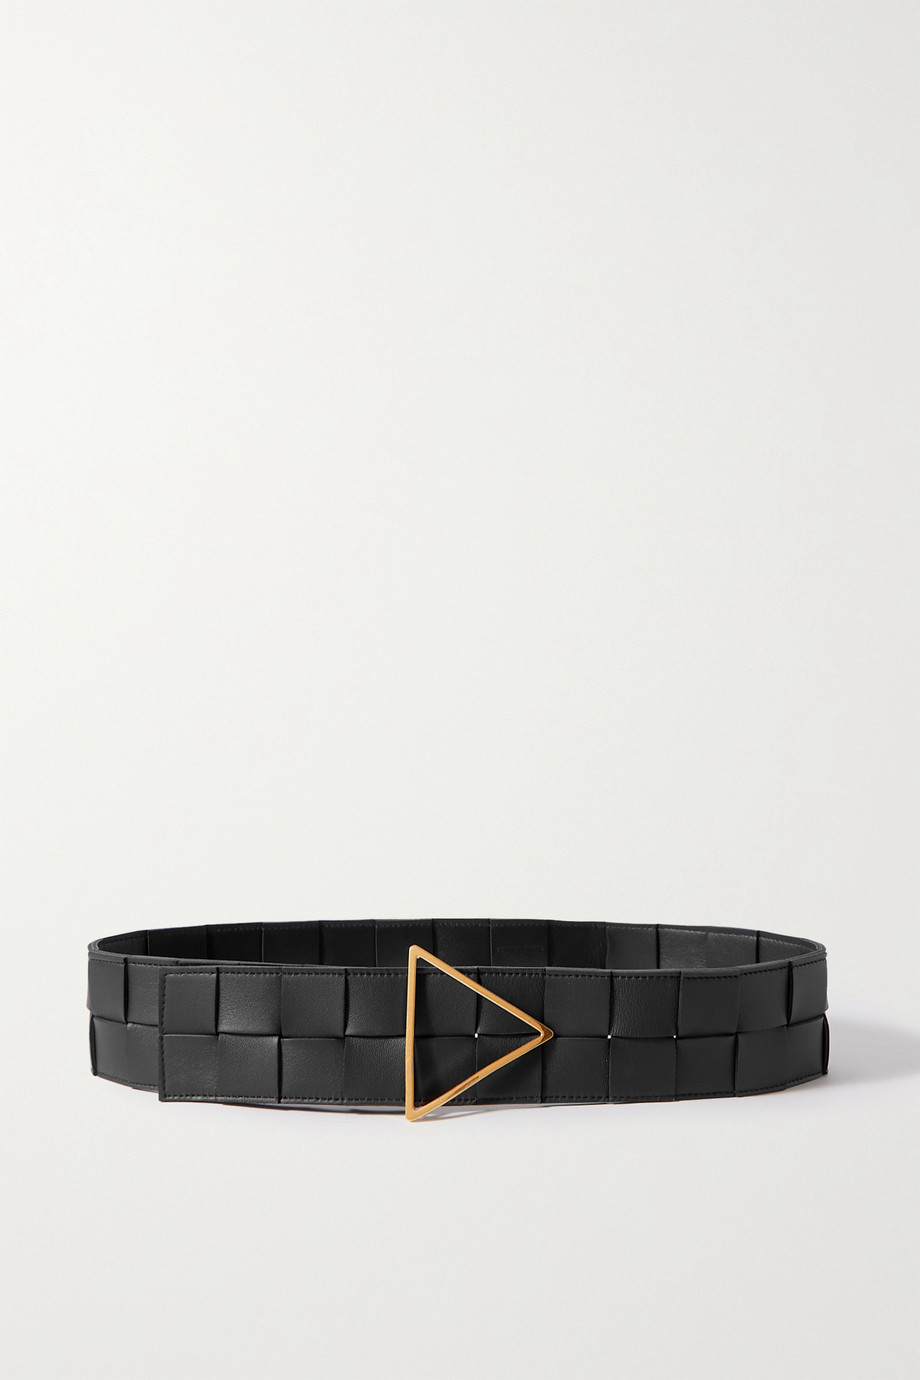 Bottega Veneta Intrecciato leather waist belt